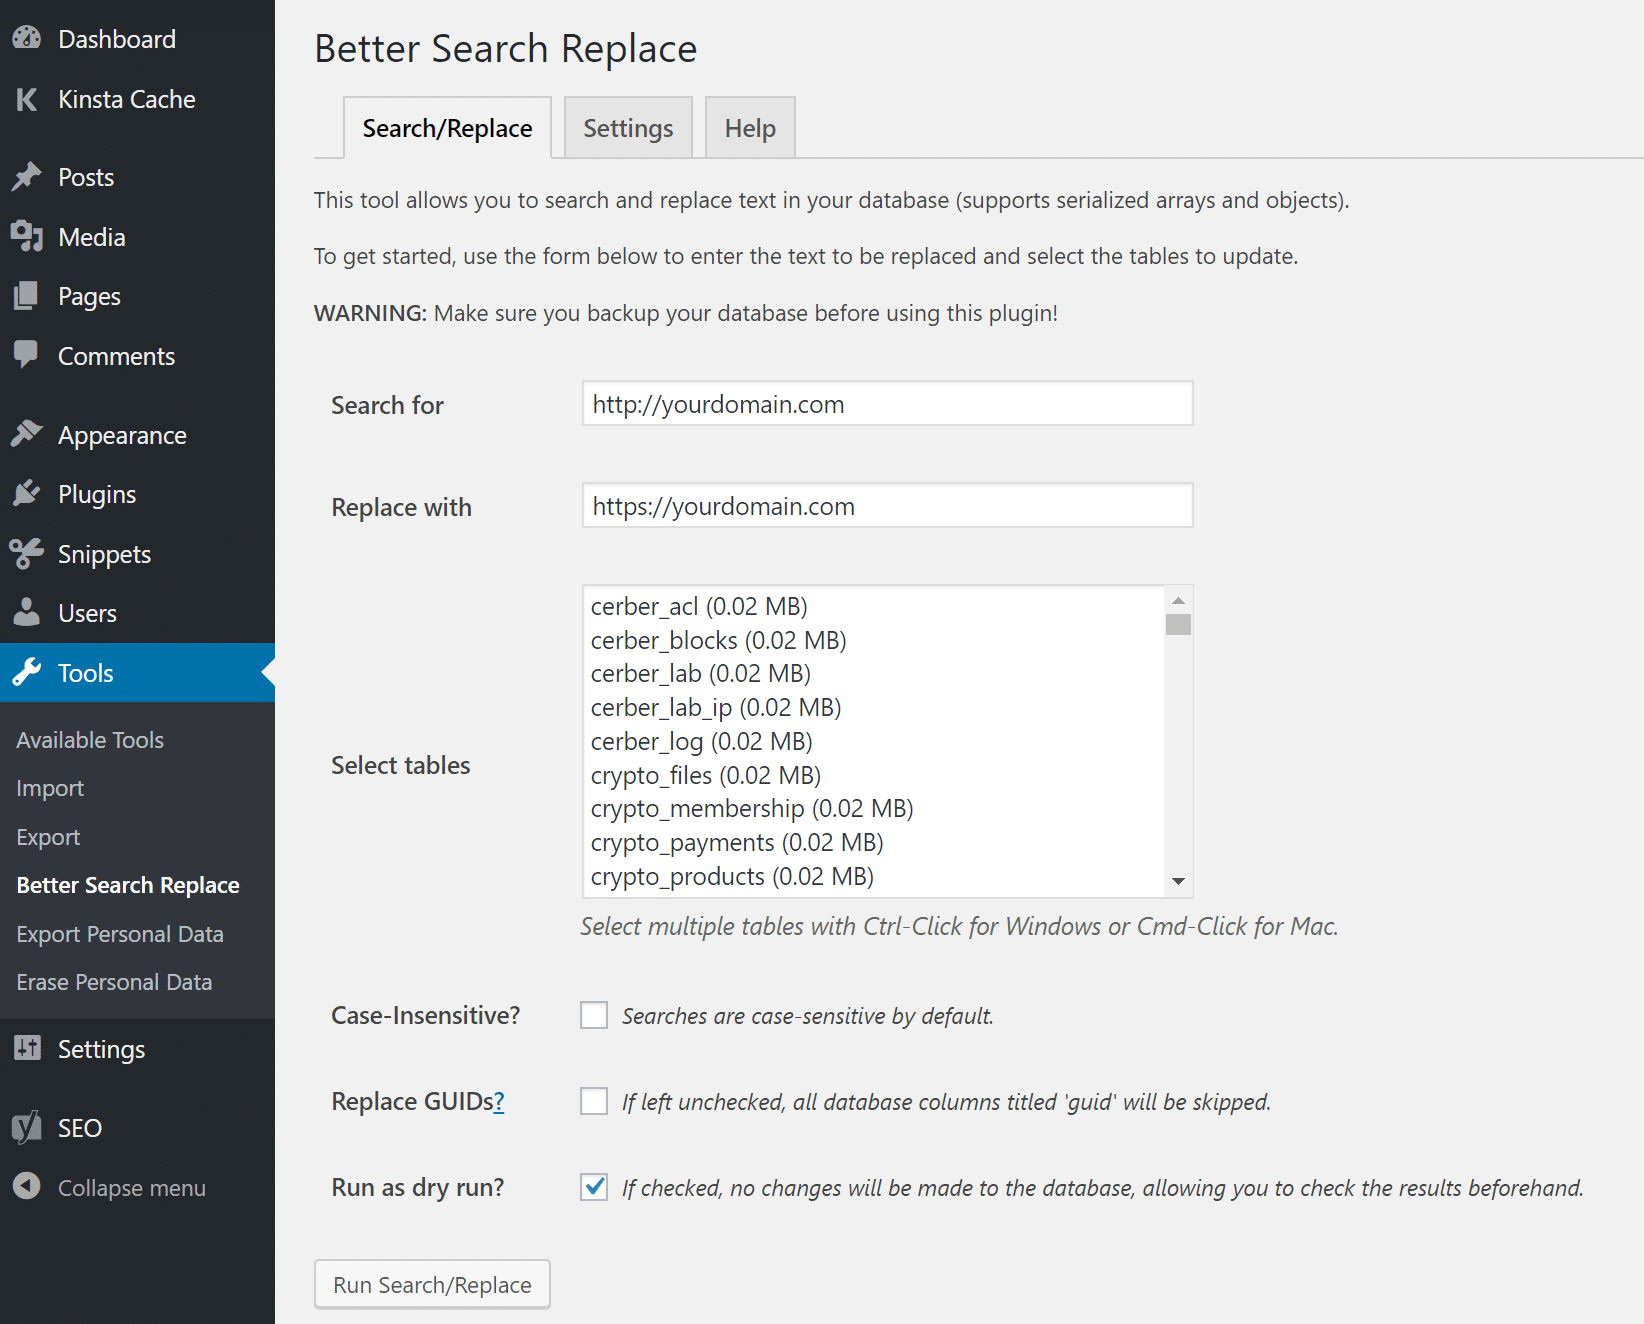 Better Search Replace options